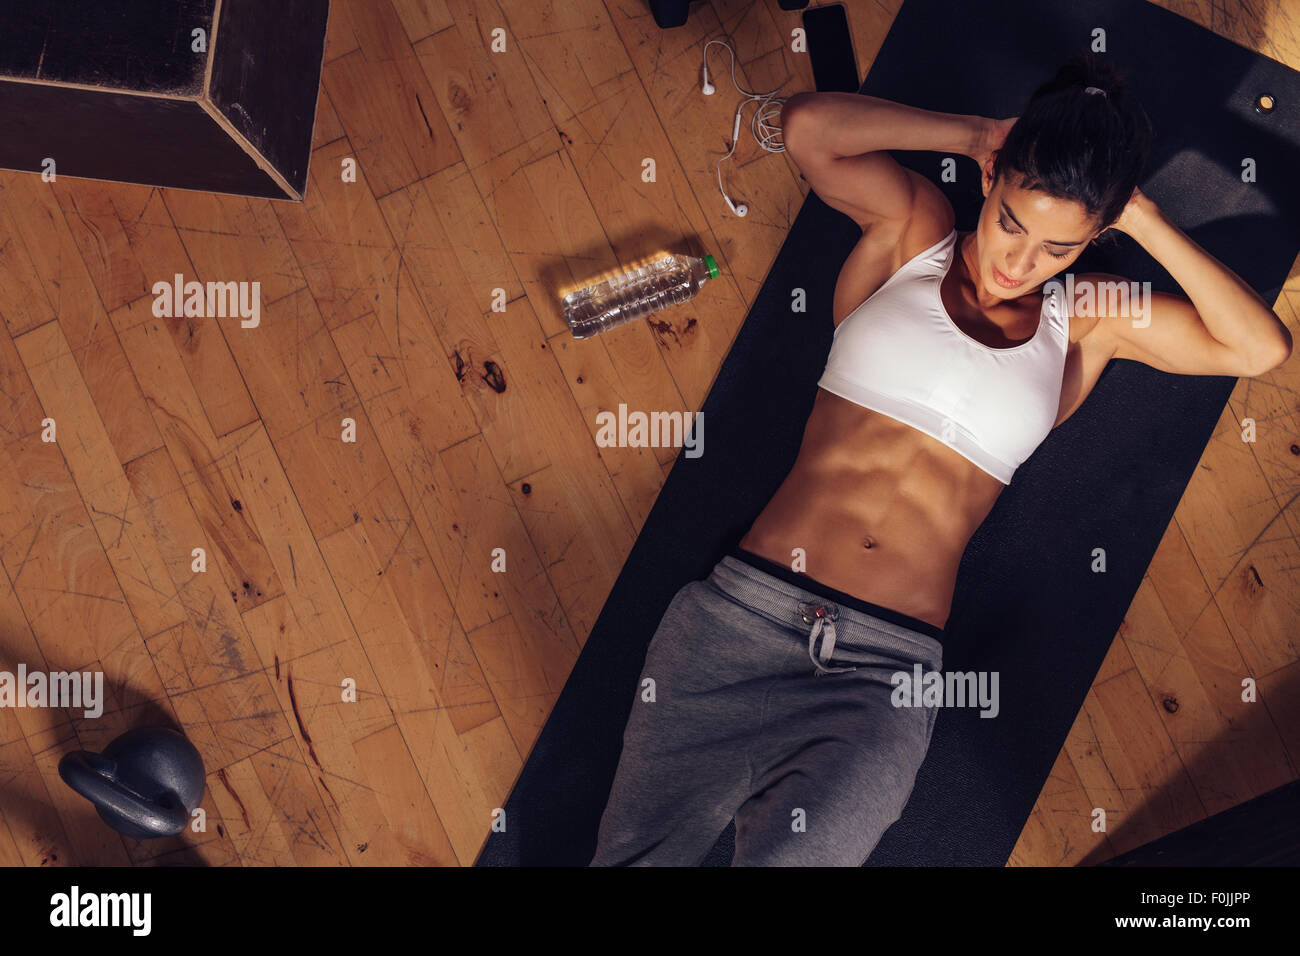 Muscular woman doing sit-ups while lying on the floor. Overhead shot of female model doing stomach exercise in gym. - Stock Image